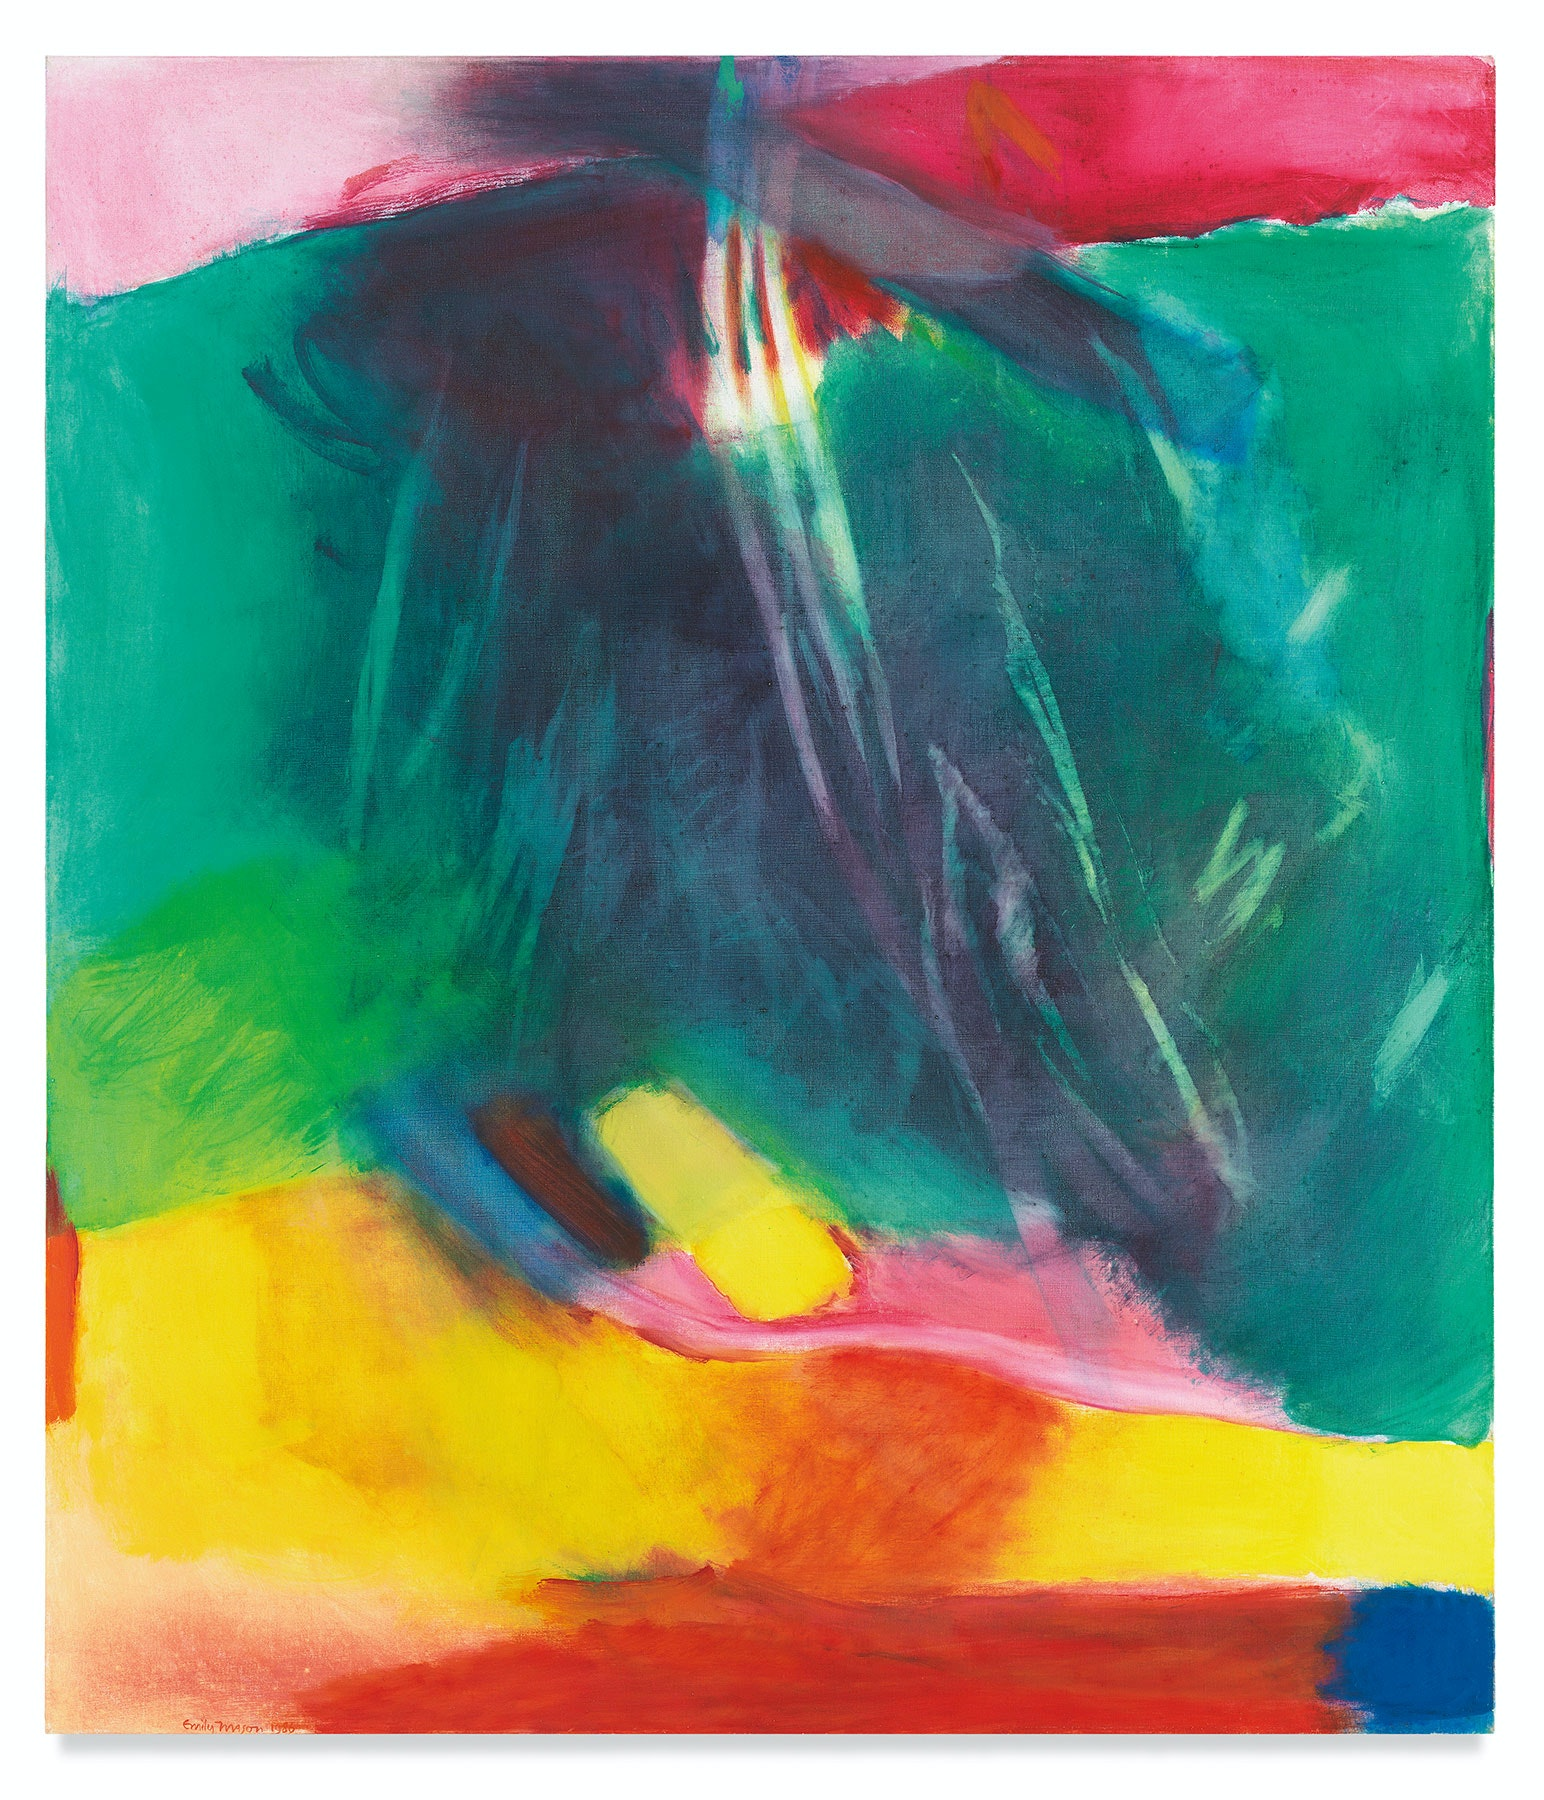 Emily Mason, <em>Surpassing Ermine</em>, 1985–86. Oil on canvas, 60 x 52 inches. Courtesy the Emily Mason and Alice Trumbull Mason Foundation and Miles McEnery Gallery, New York.